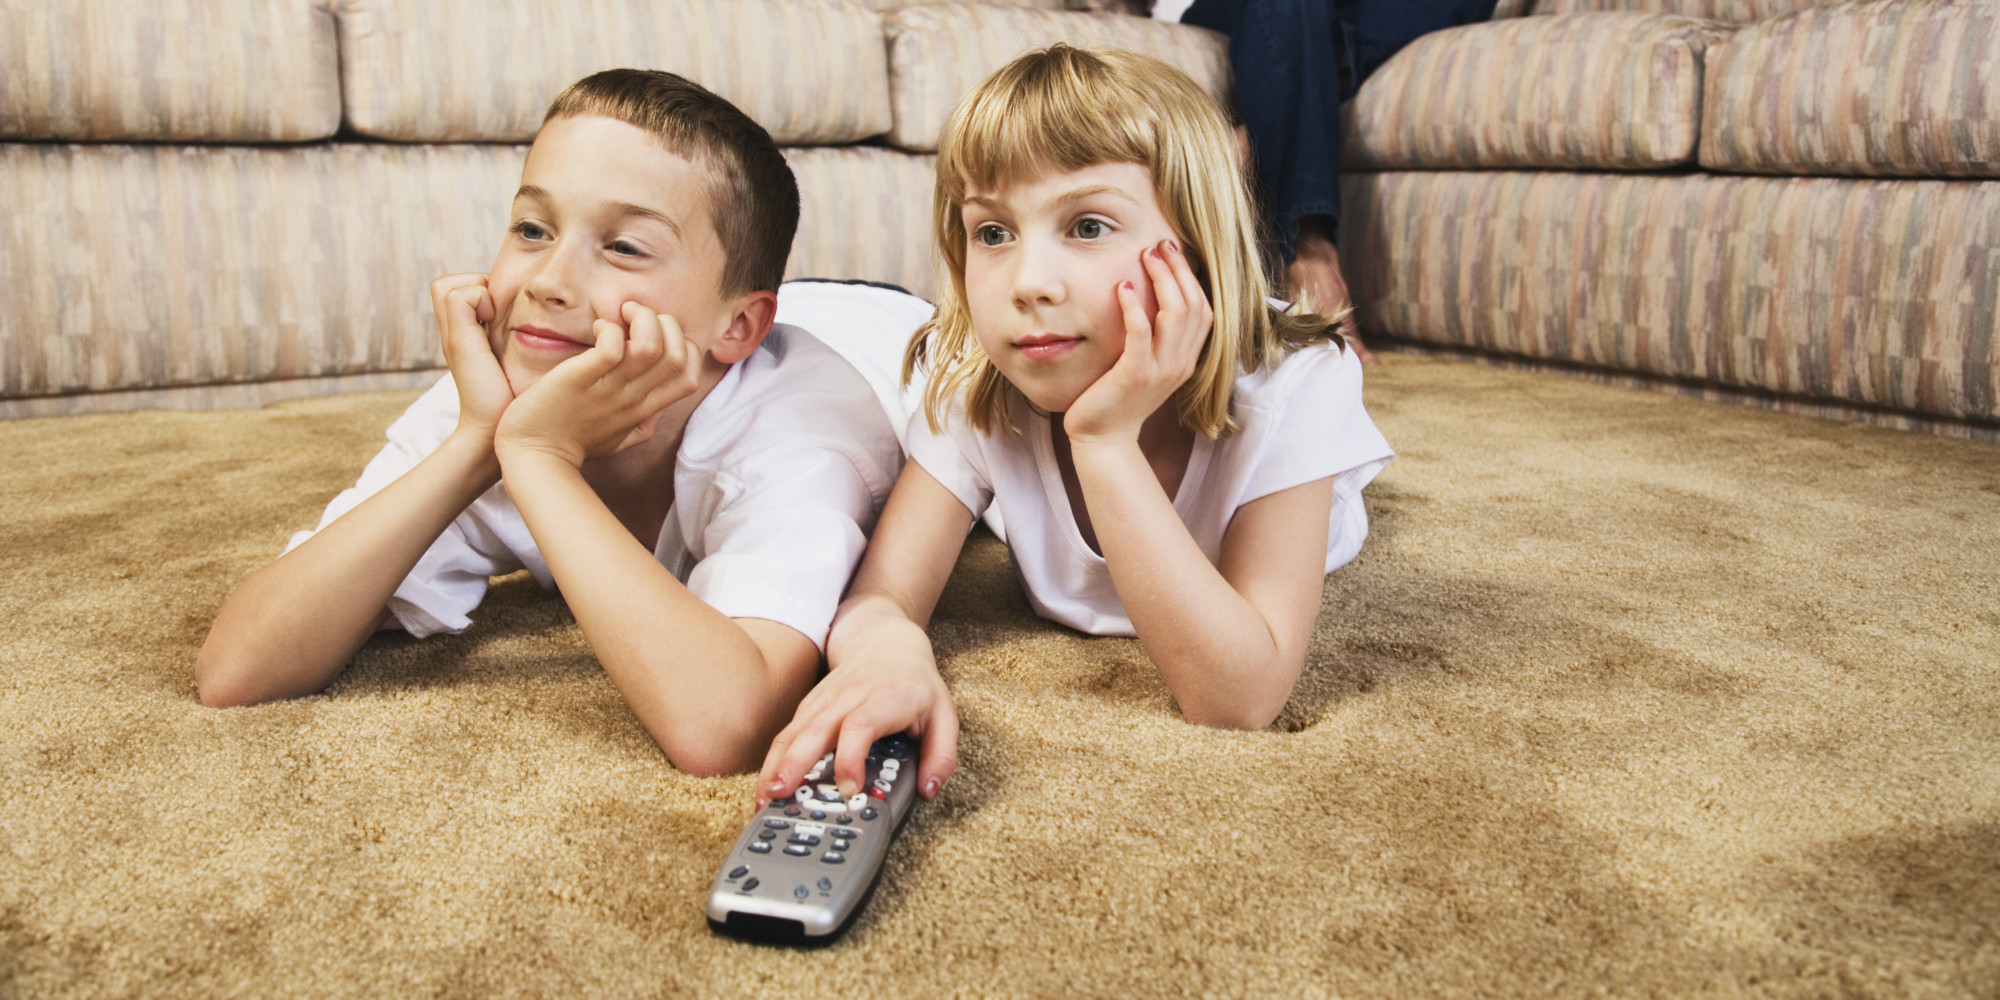 the role of parents and media